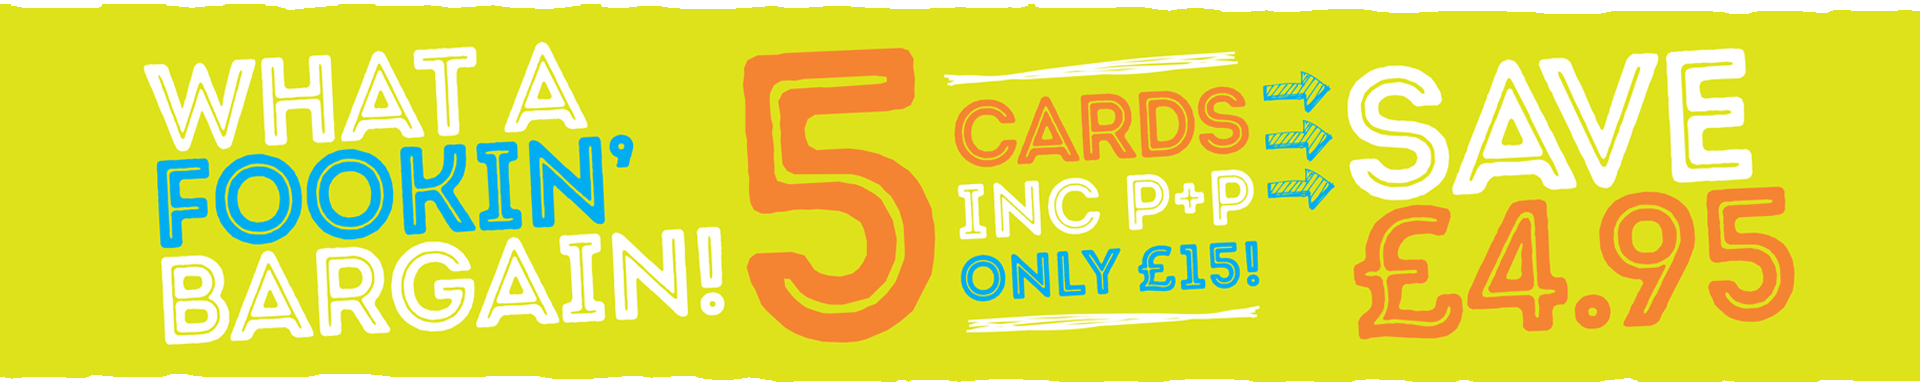 Yellow banner which reads 'What A Fookin' Bargain! 5 Cards Inc P+P Only £15! Save £4.95